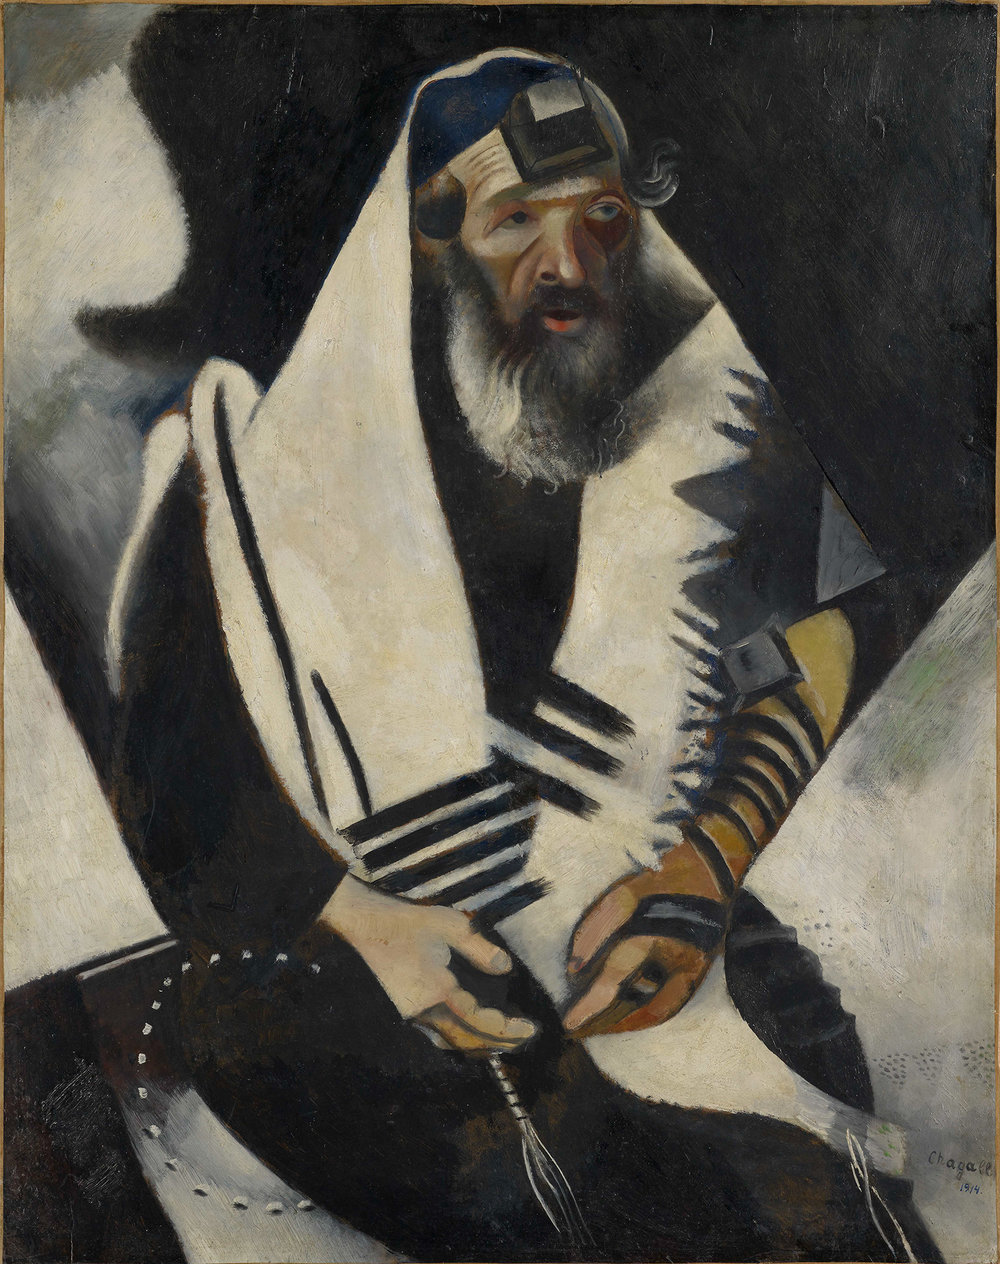 Jew in Black and White (Le juif en noir et blanc), 1914 Oil on cardboard mounted on canvas 101 x 80 cm Im Obersteg Collection, permanent loan to the Kunstmuseum Basel 2004, Inv. Im 1084 © Marc Chagall, Vegap, Bilbao 2018